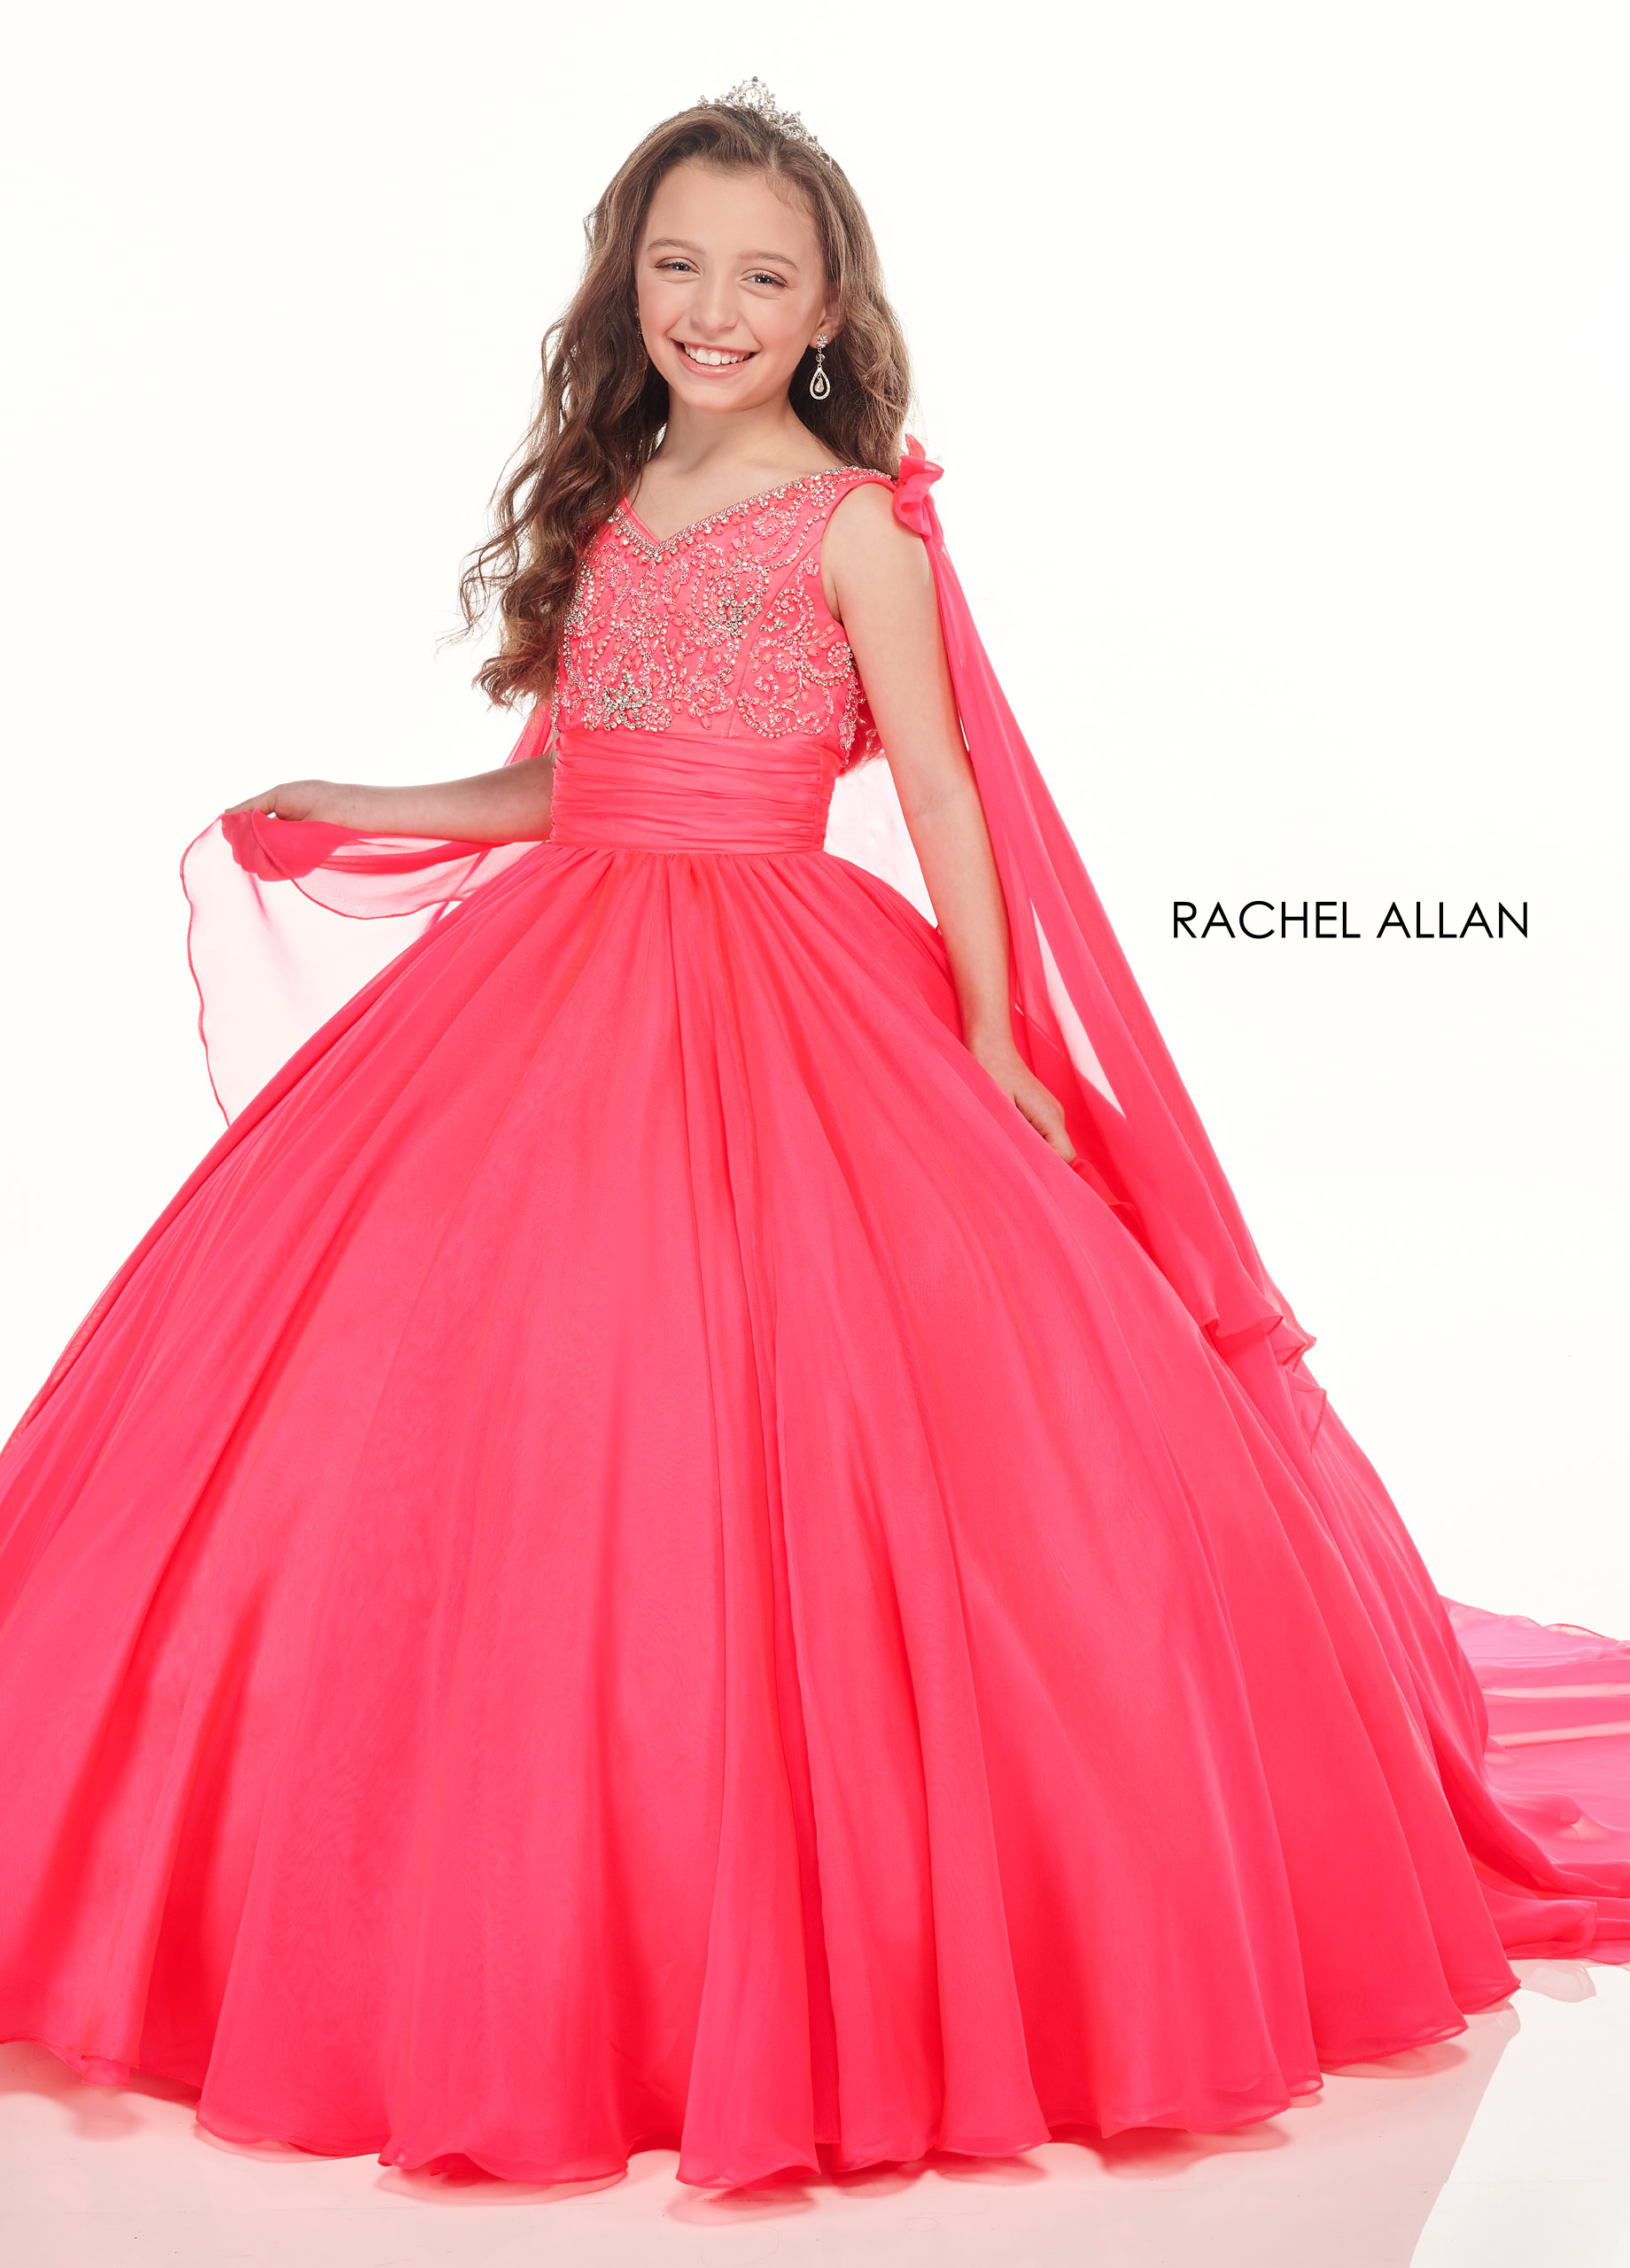 V-Neck Ball Gowns Little Girl Pageant Dresses in Pink Color